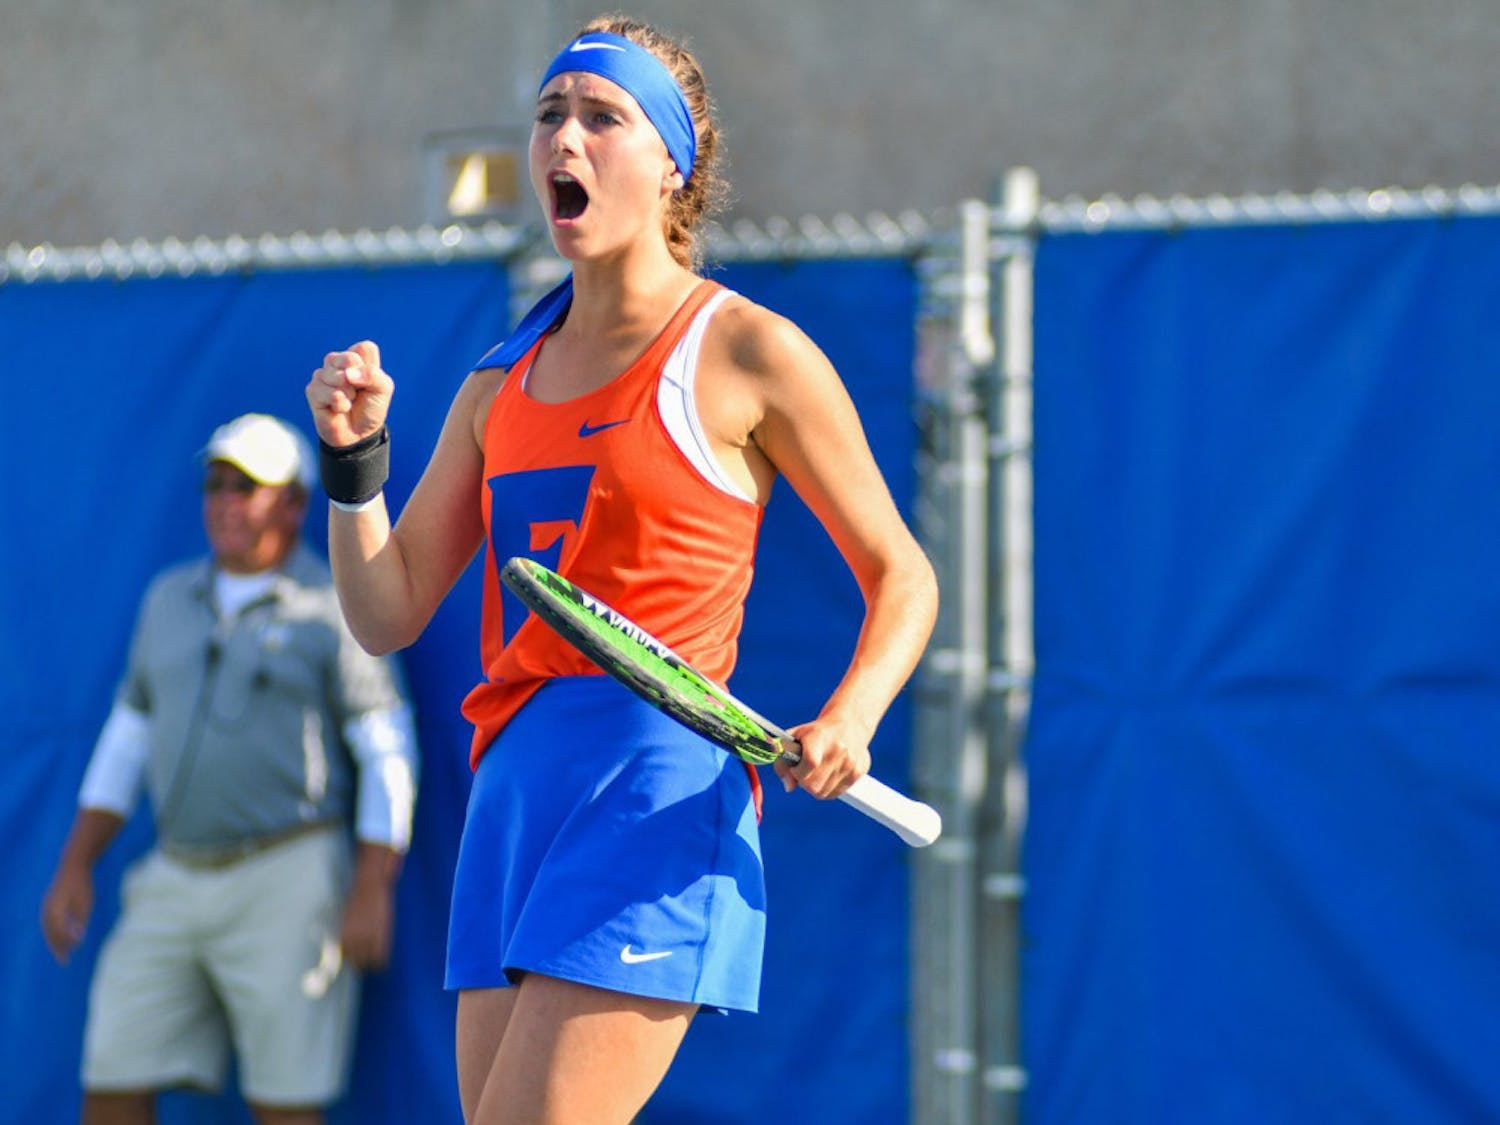 Florida's transfer tandem of Ida Jarlskog (pictured) and Tsveta Dimitrova fell to South Carolina's Rachel Rohrabacher and Paige Cline in the Florida women's tennis team's 4-2 loss.